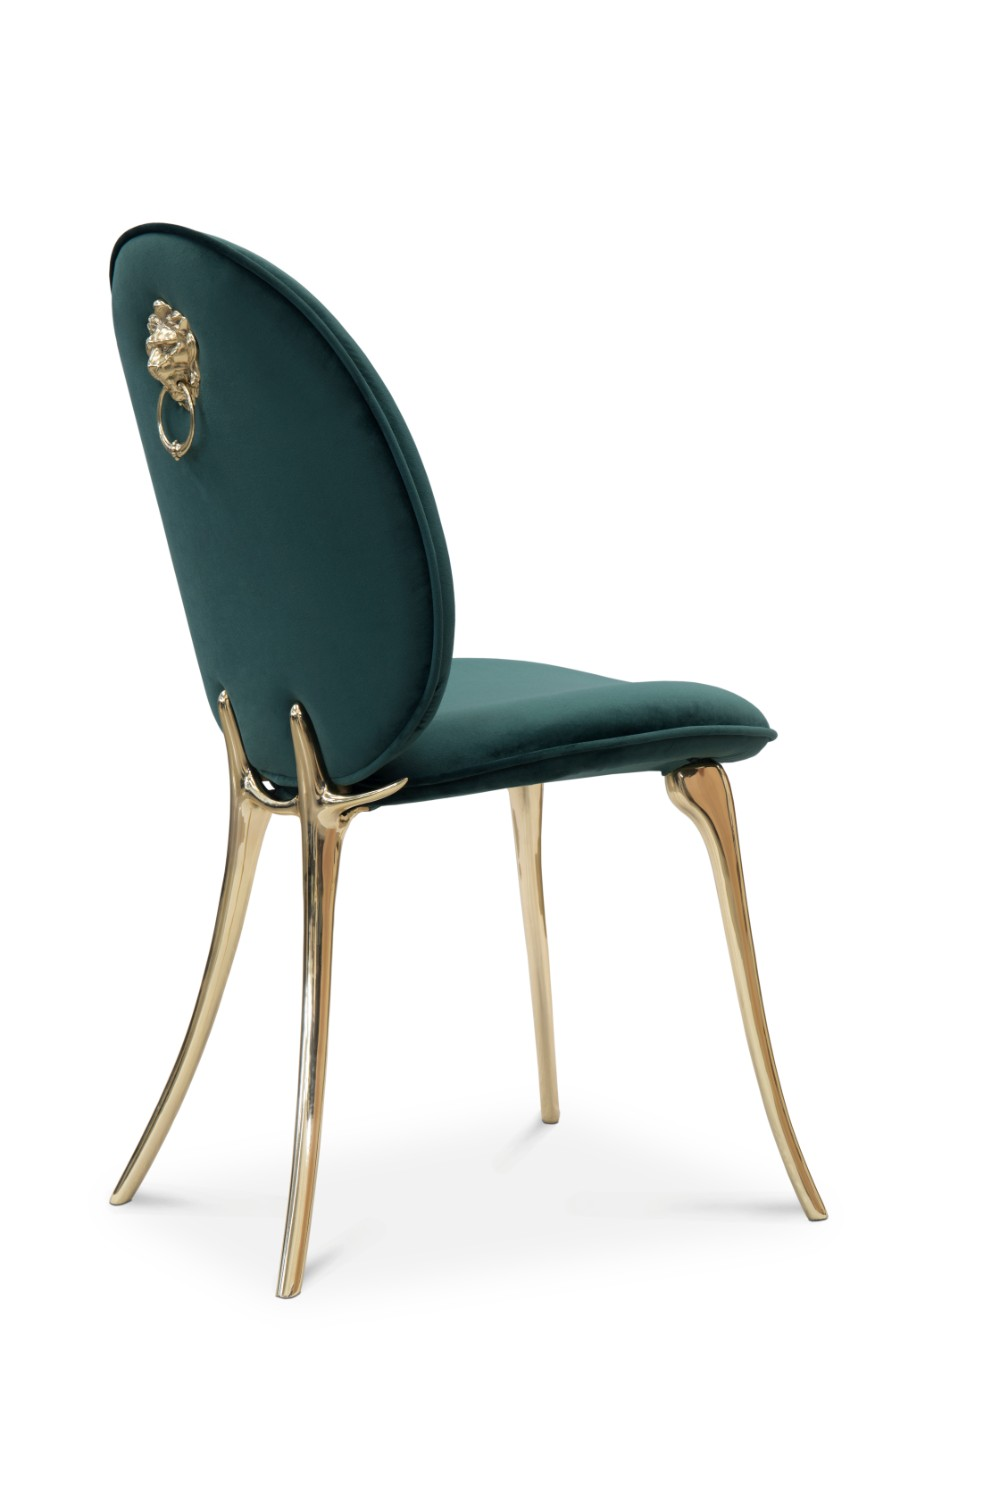 decorex A Design Affair By Boca Do Lobo & Rug'Society at Decorex soleil chair 04 HR